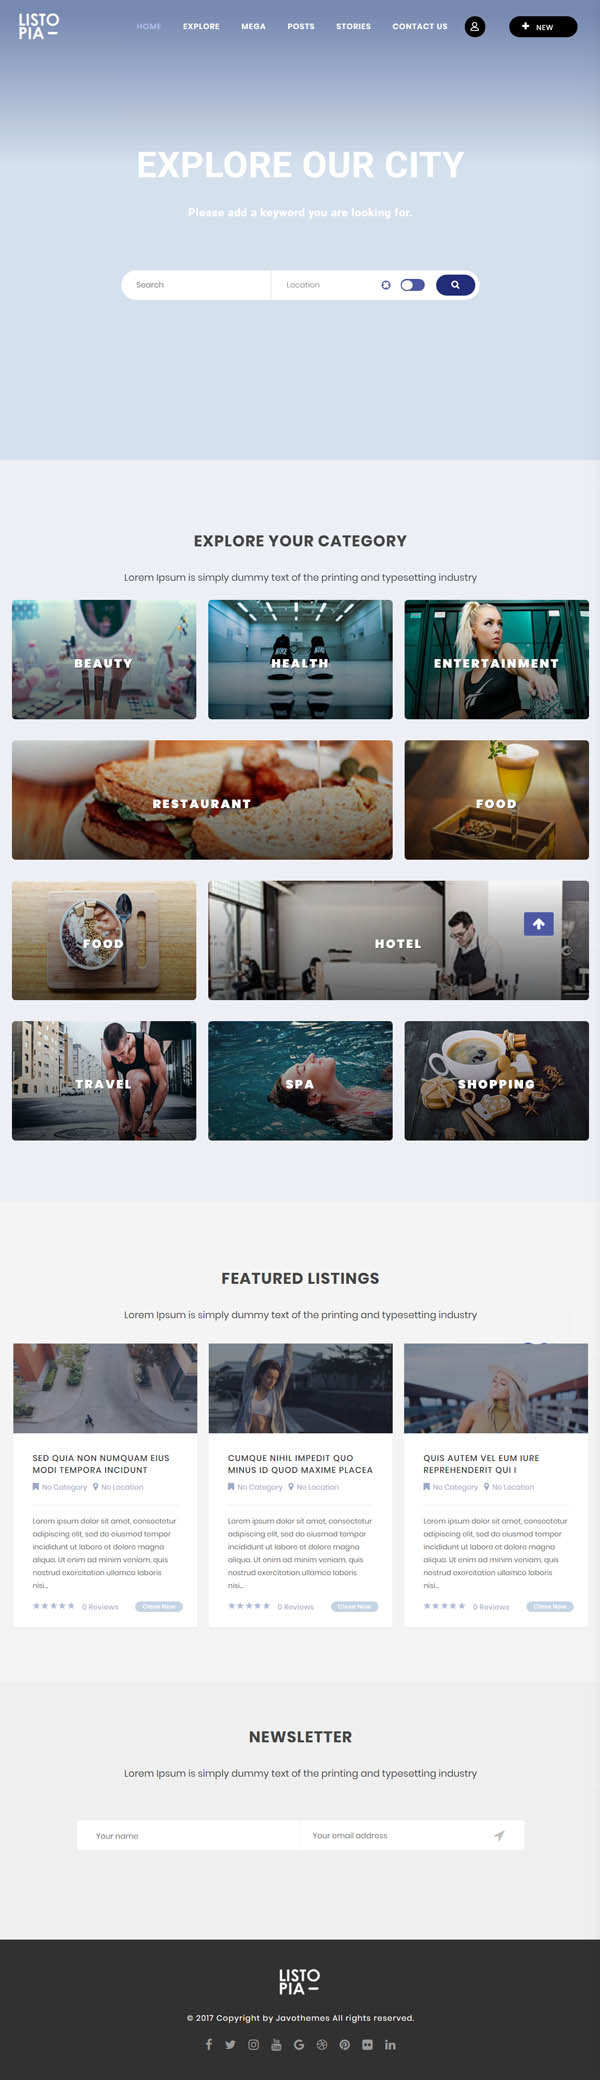 Listopia - Directory, Community WordPress Theme